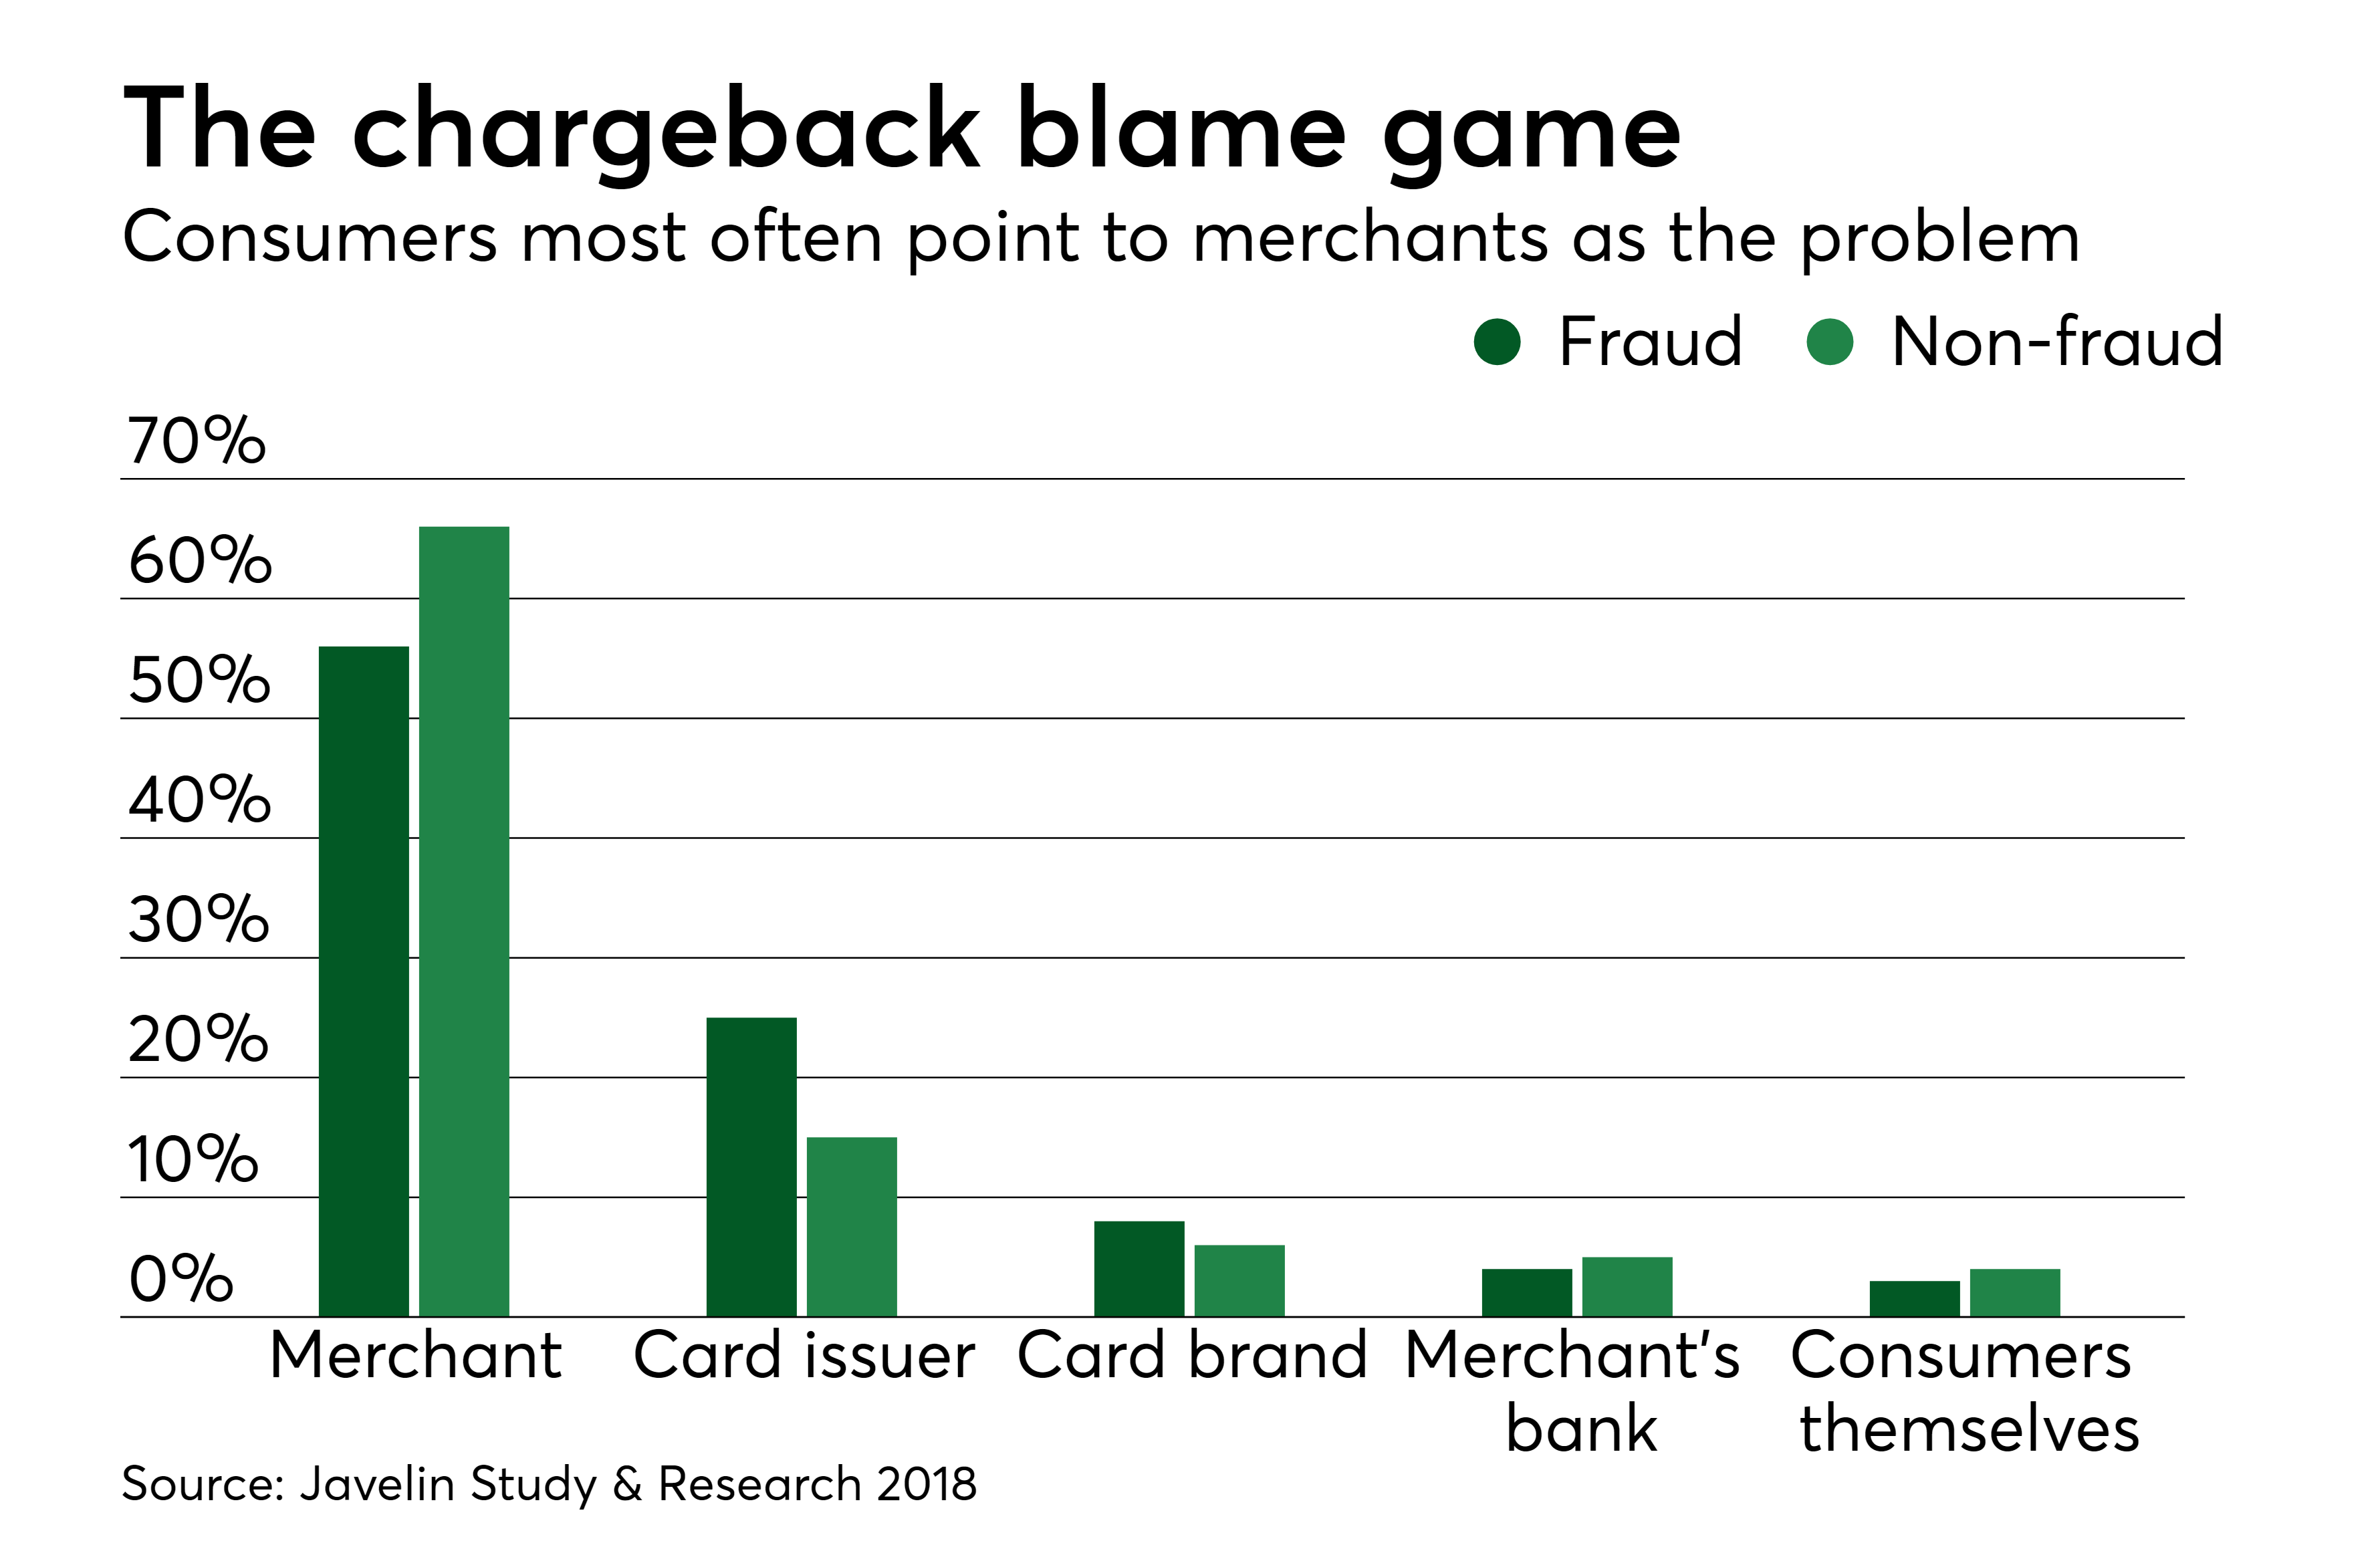 https://assets.sourcemedia.com/fc/8d/4174236446ad8c25880ab745aaff/pso-5-15-18-chargeback-blame.png